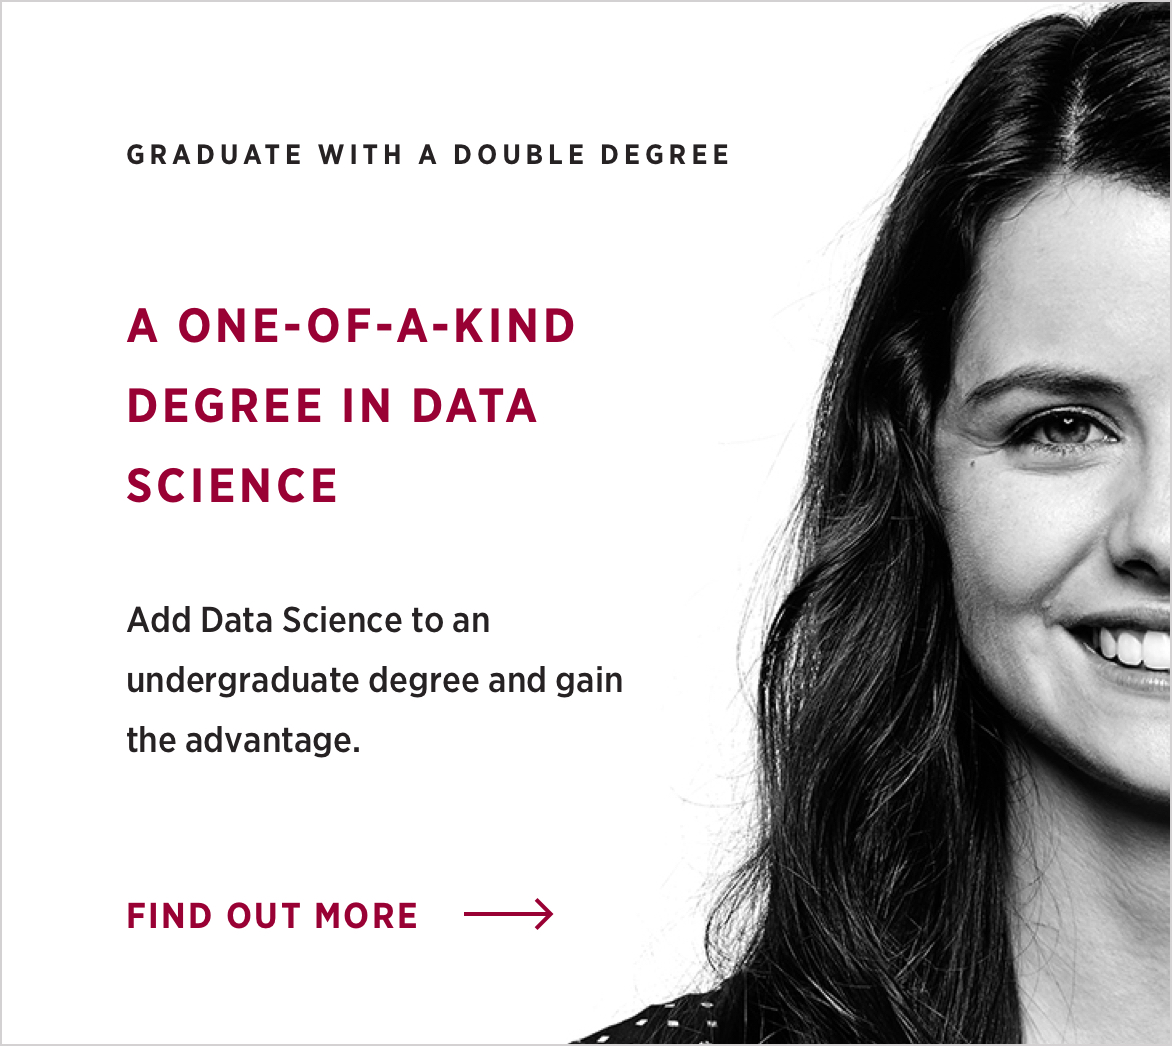 Data Science at Western